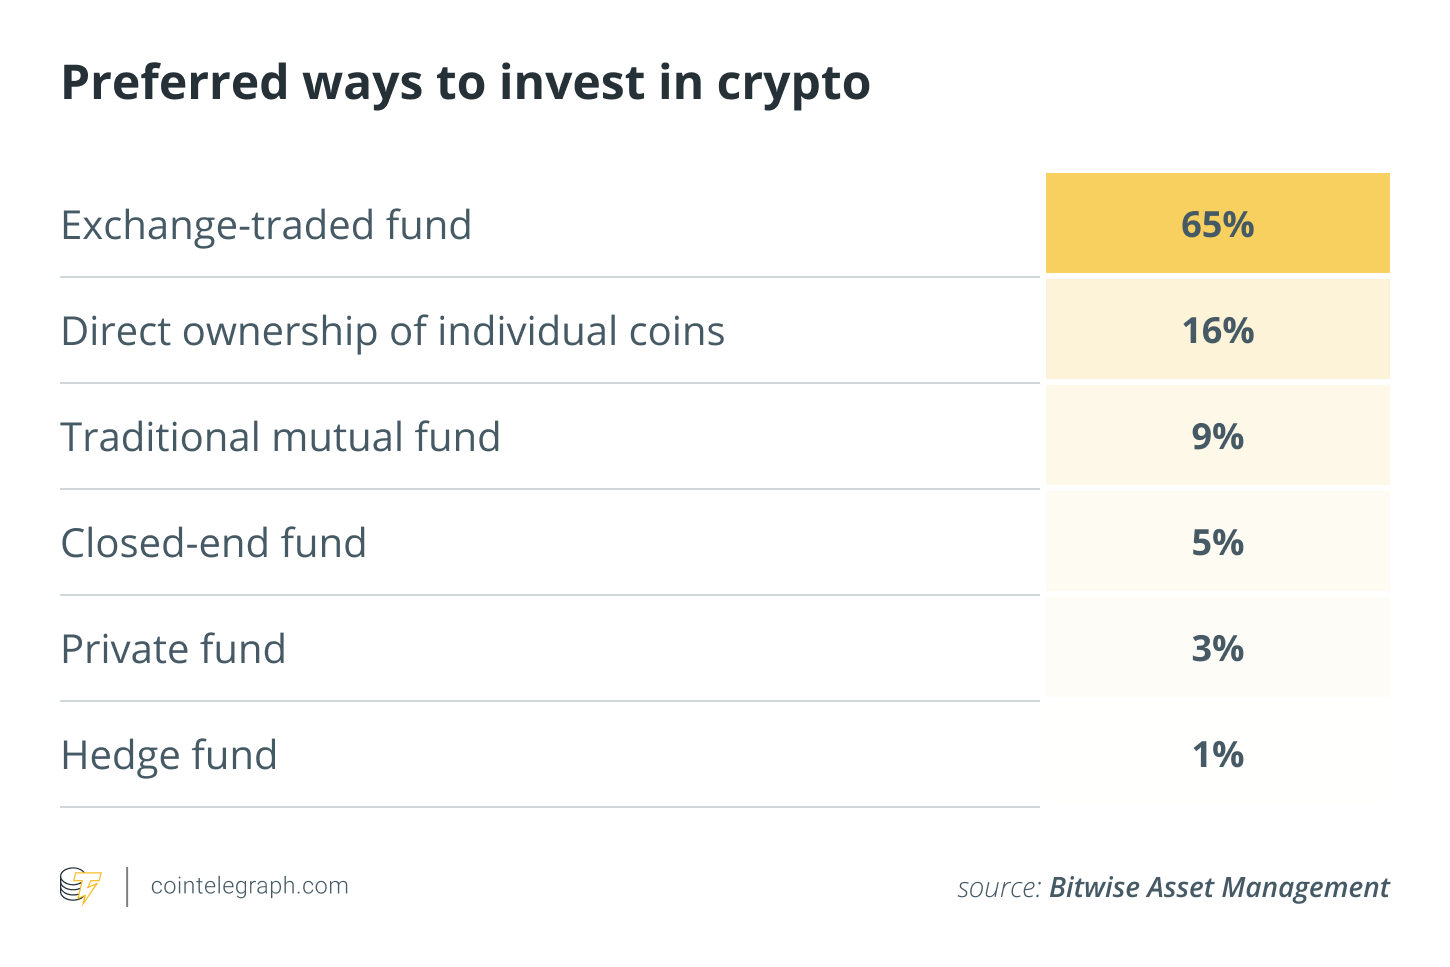 Preferred ways to invest in crypto